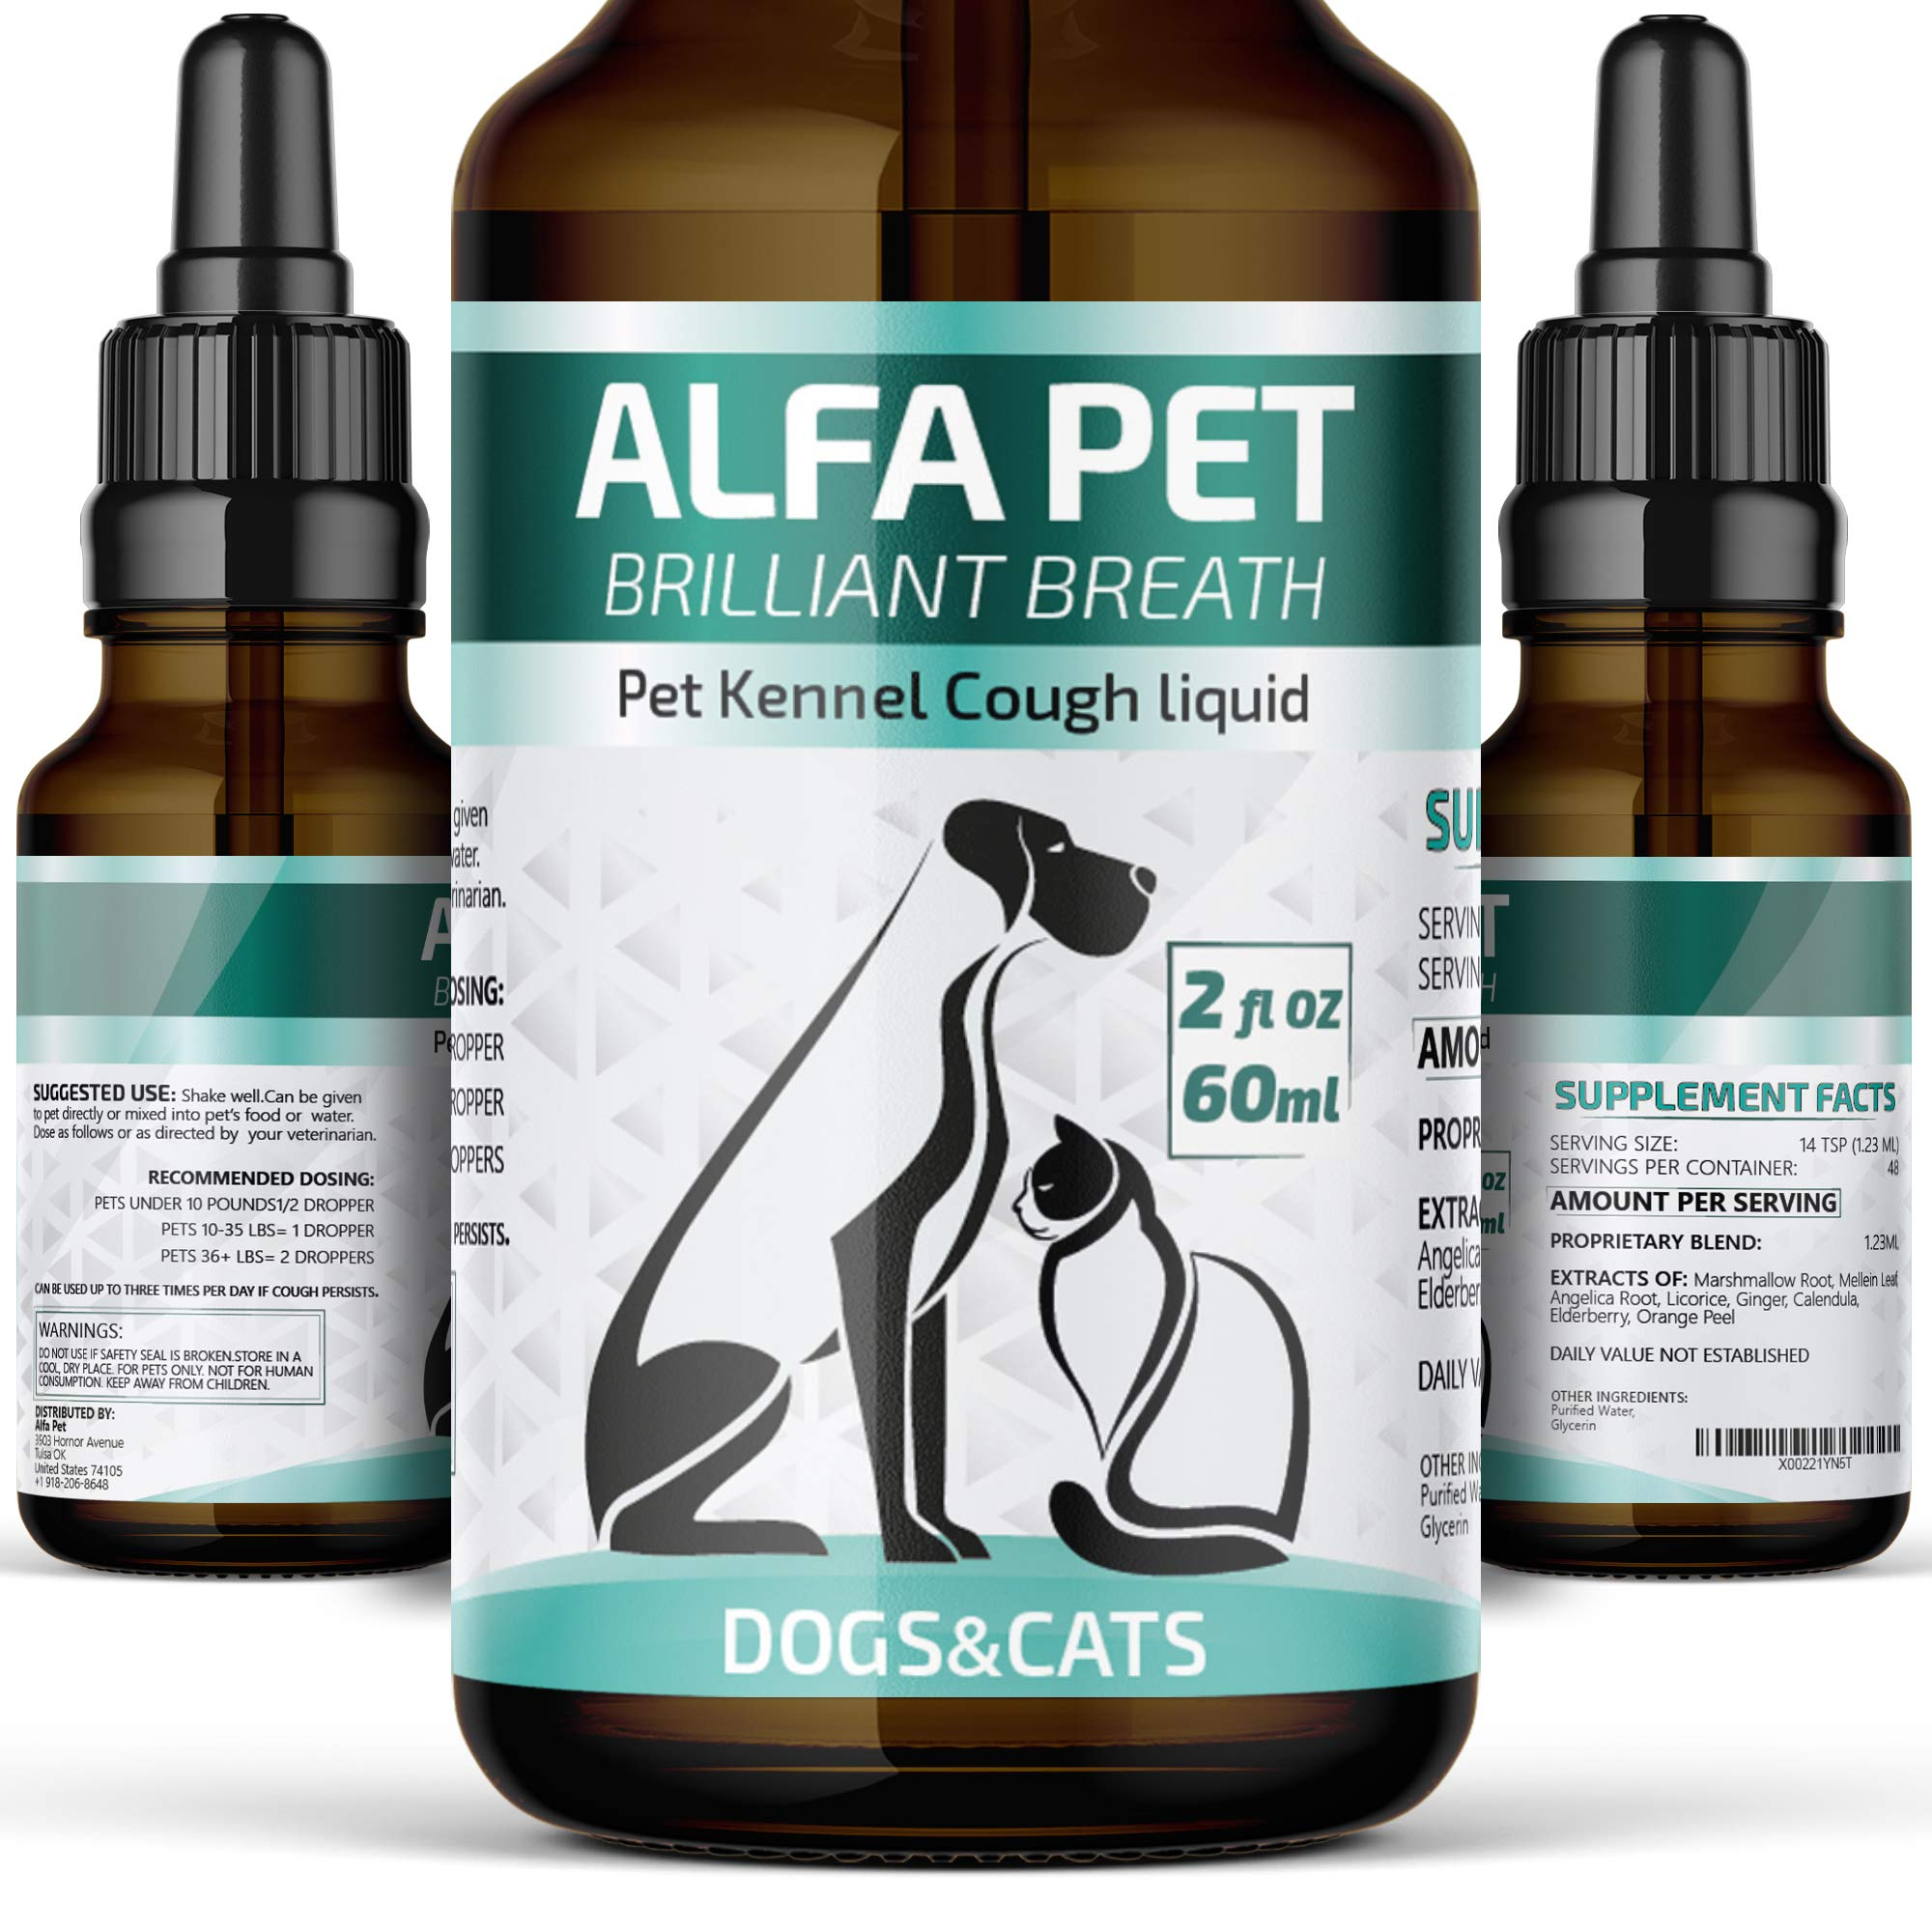 Kennel Cough Medicine for Dogs, Organic Dog Cough Medicine for Colds and Allergies - Natural Kennel Cough Treatment with Mullein Leaf and Elderberry by Alfa Pet